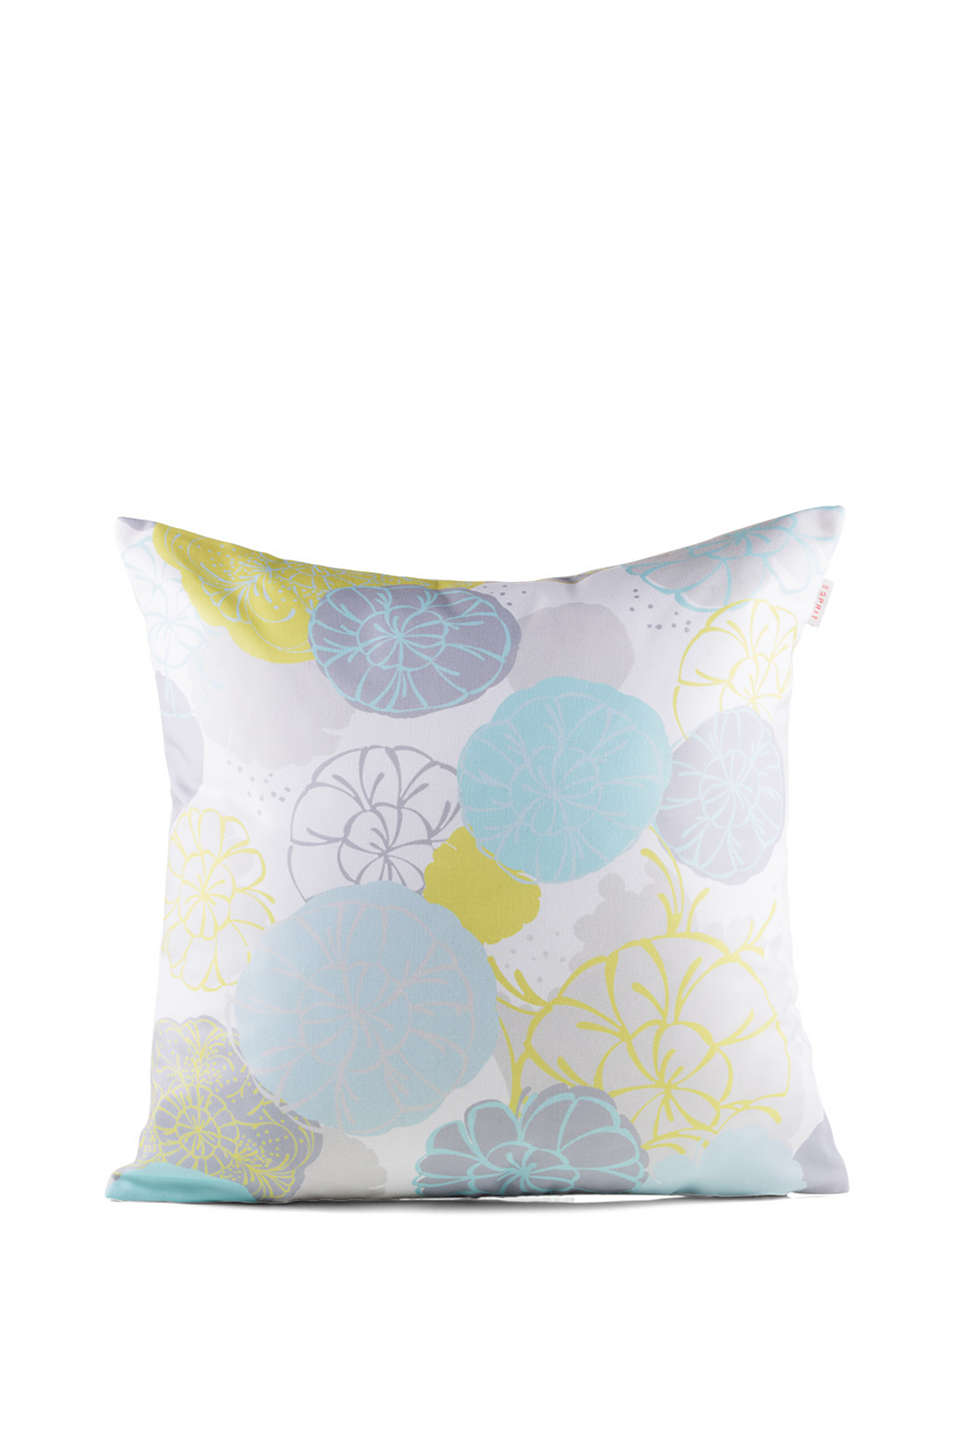 Esprit - Mika cushion cover with a digital print